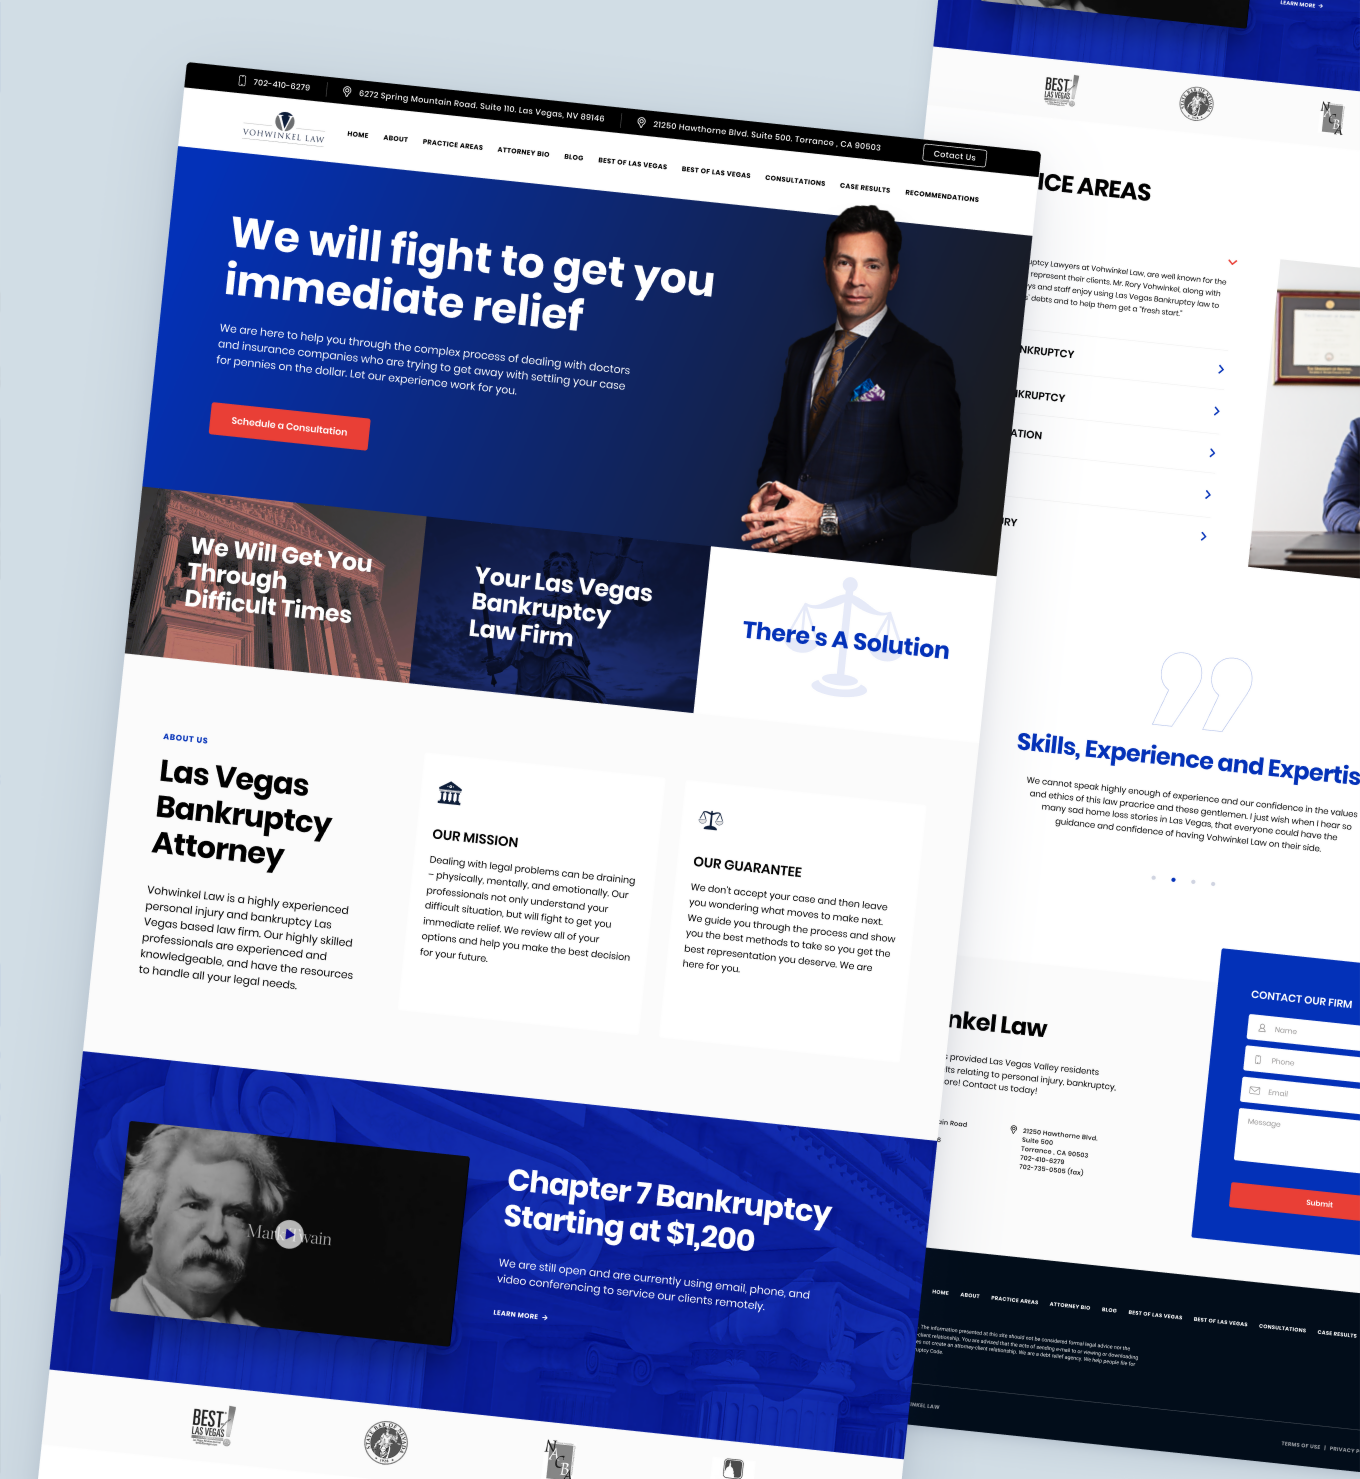 Lawyer services landing page